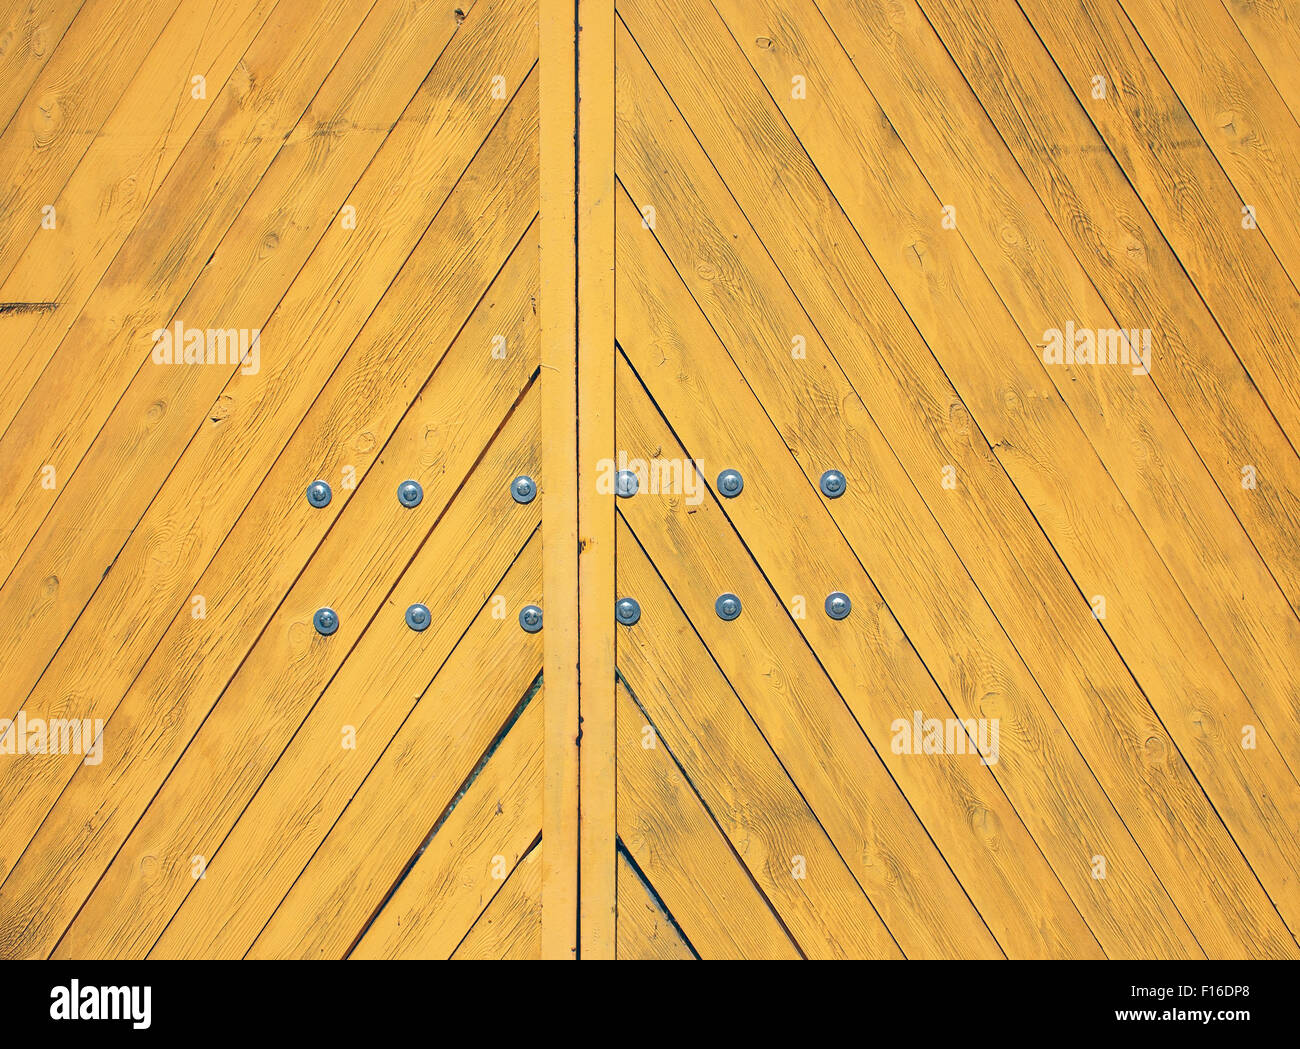 Wooden Strips Stock Photos & Wooden Strips Stock Images - Alamy